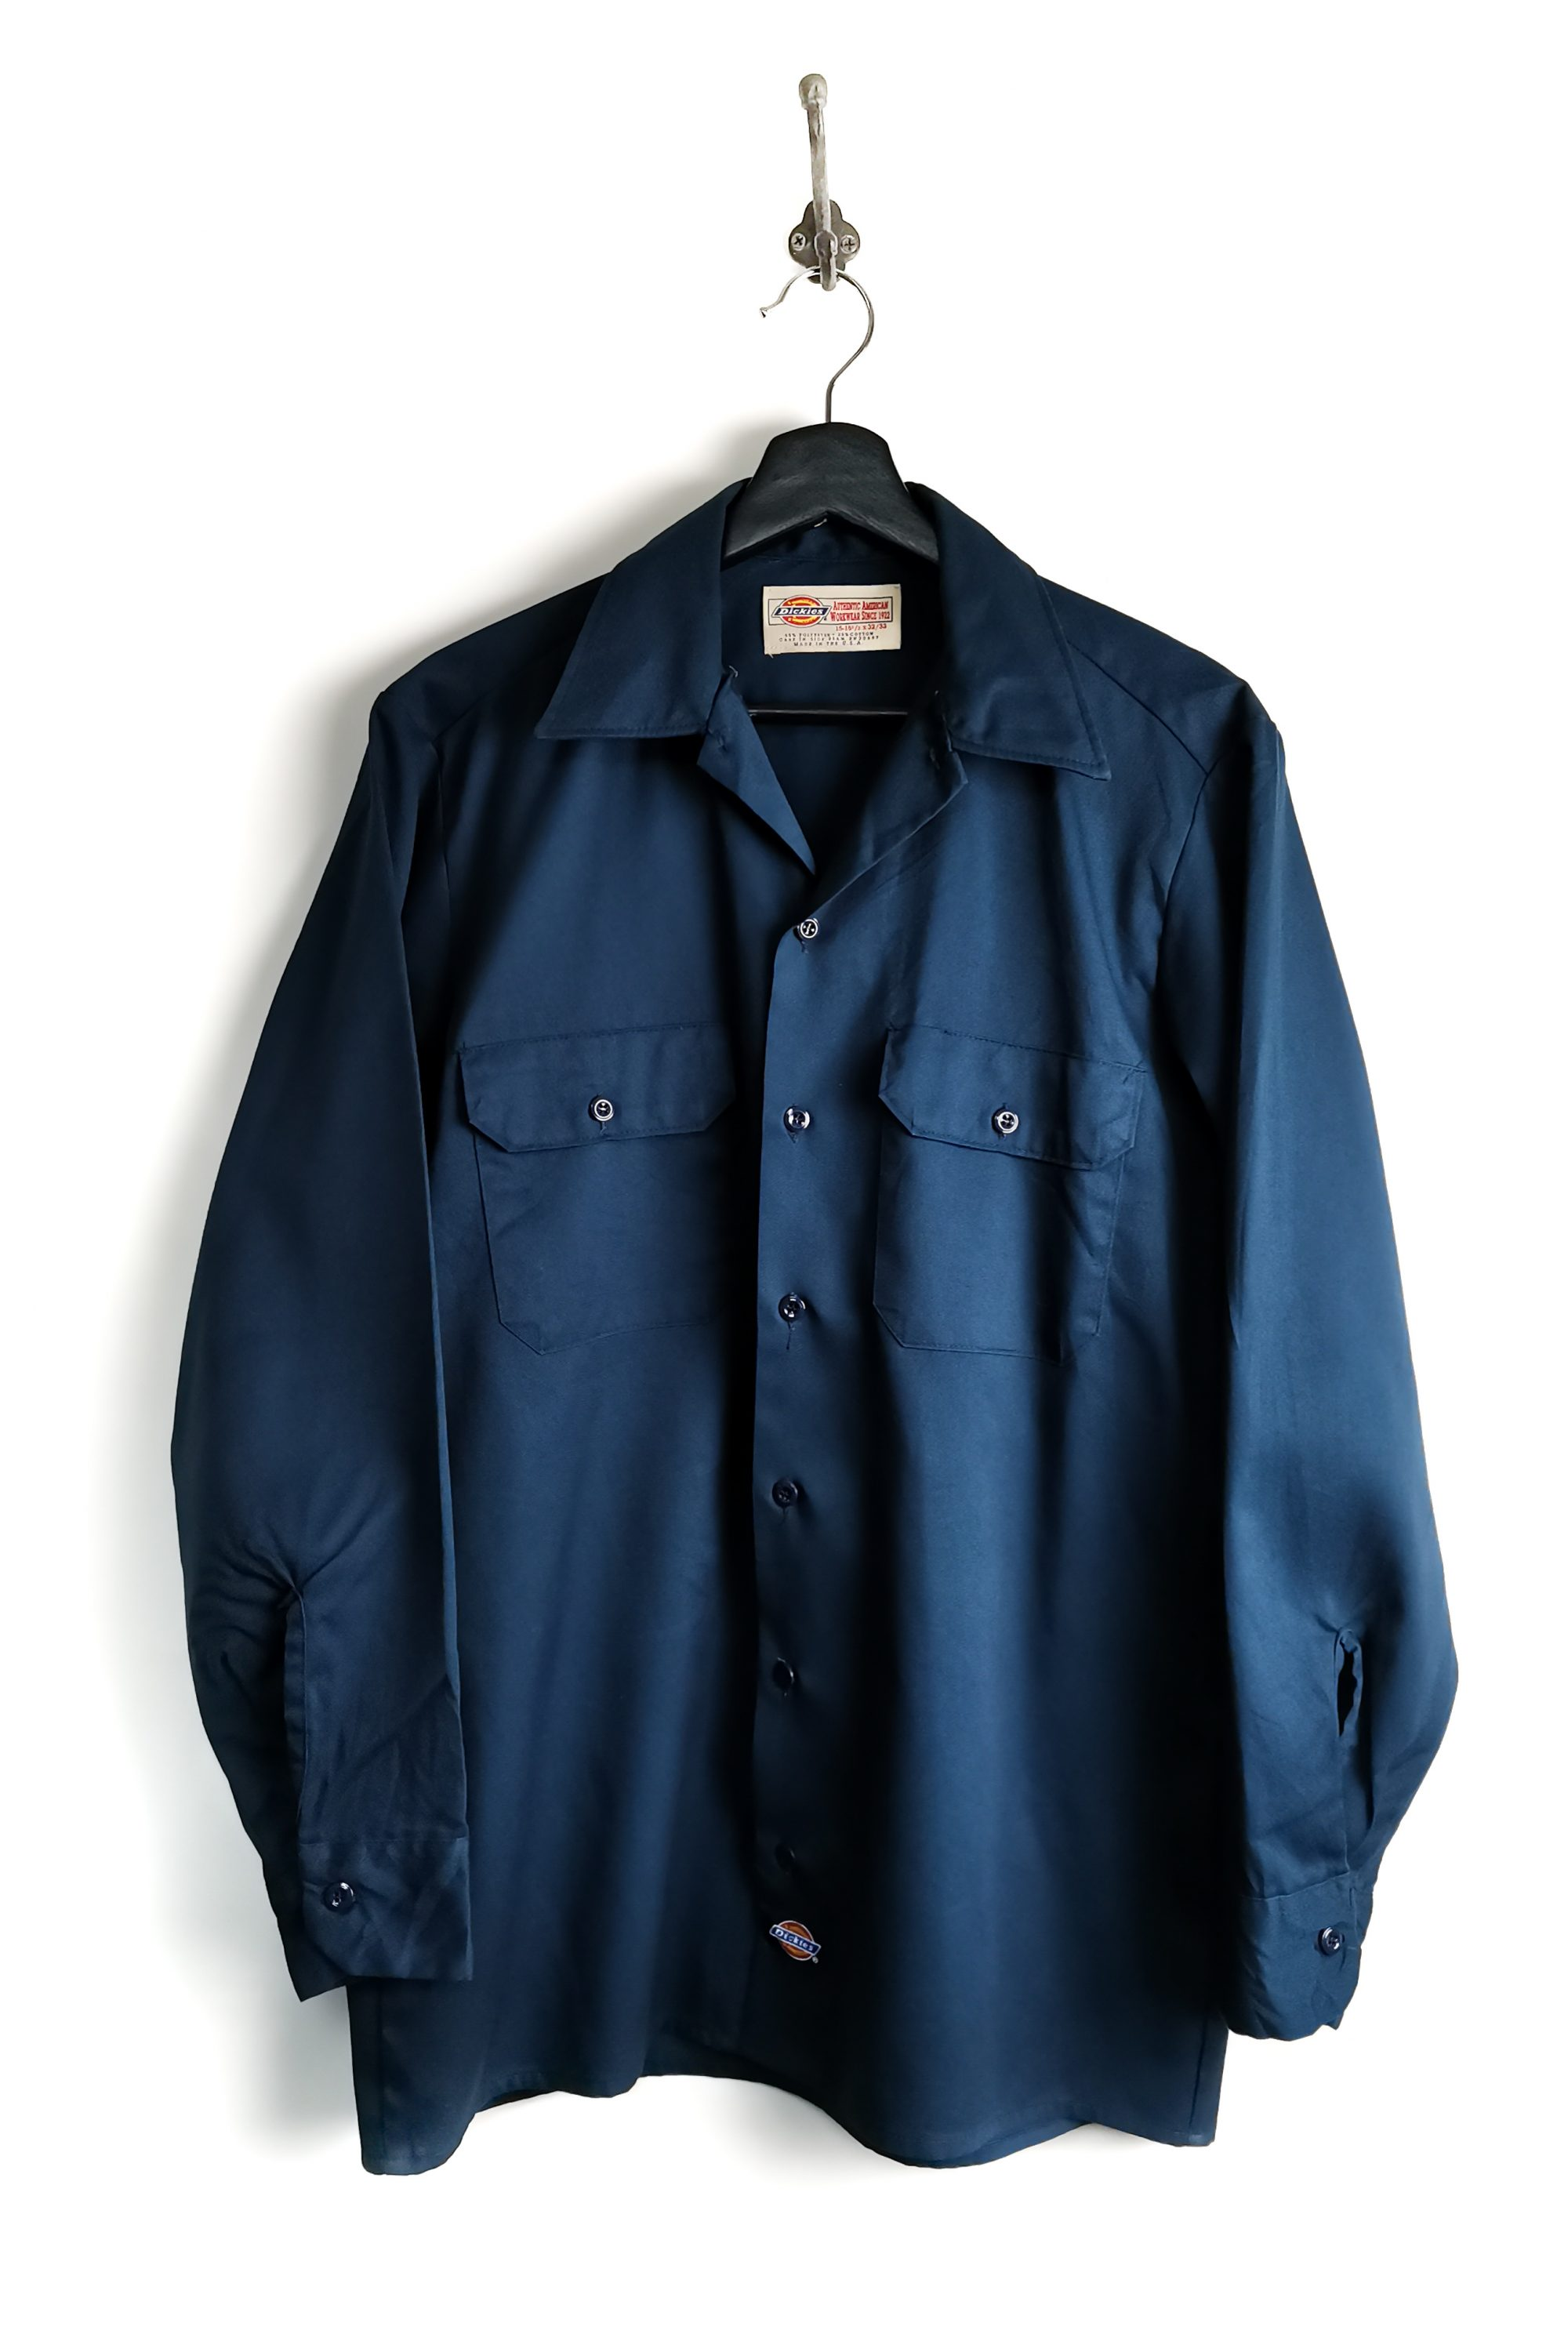 MADE IN USA_Vintage Dickies Shirt-1